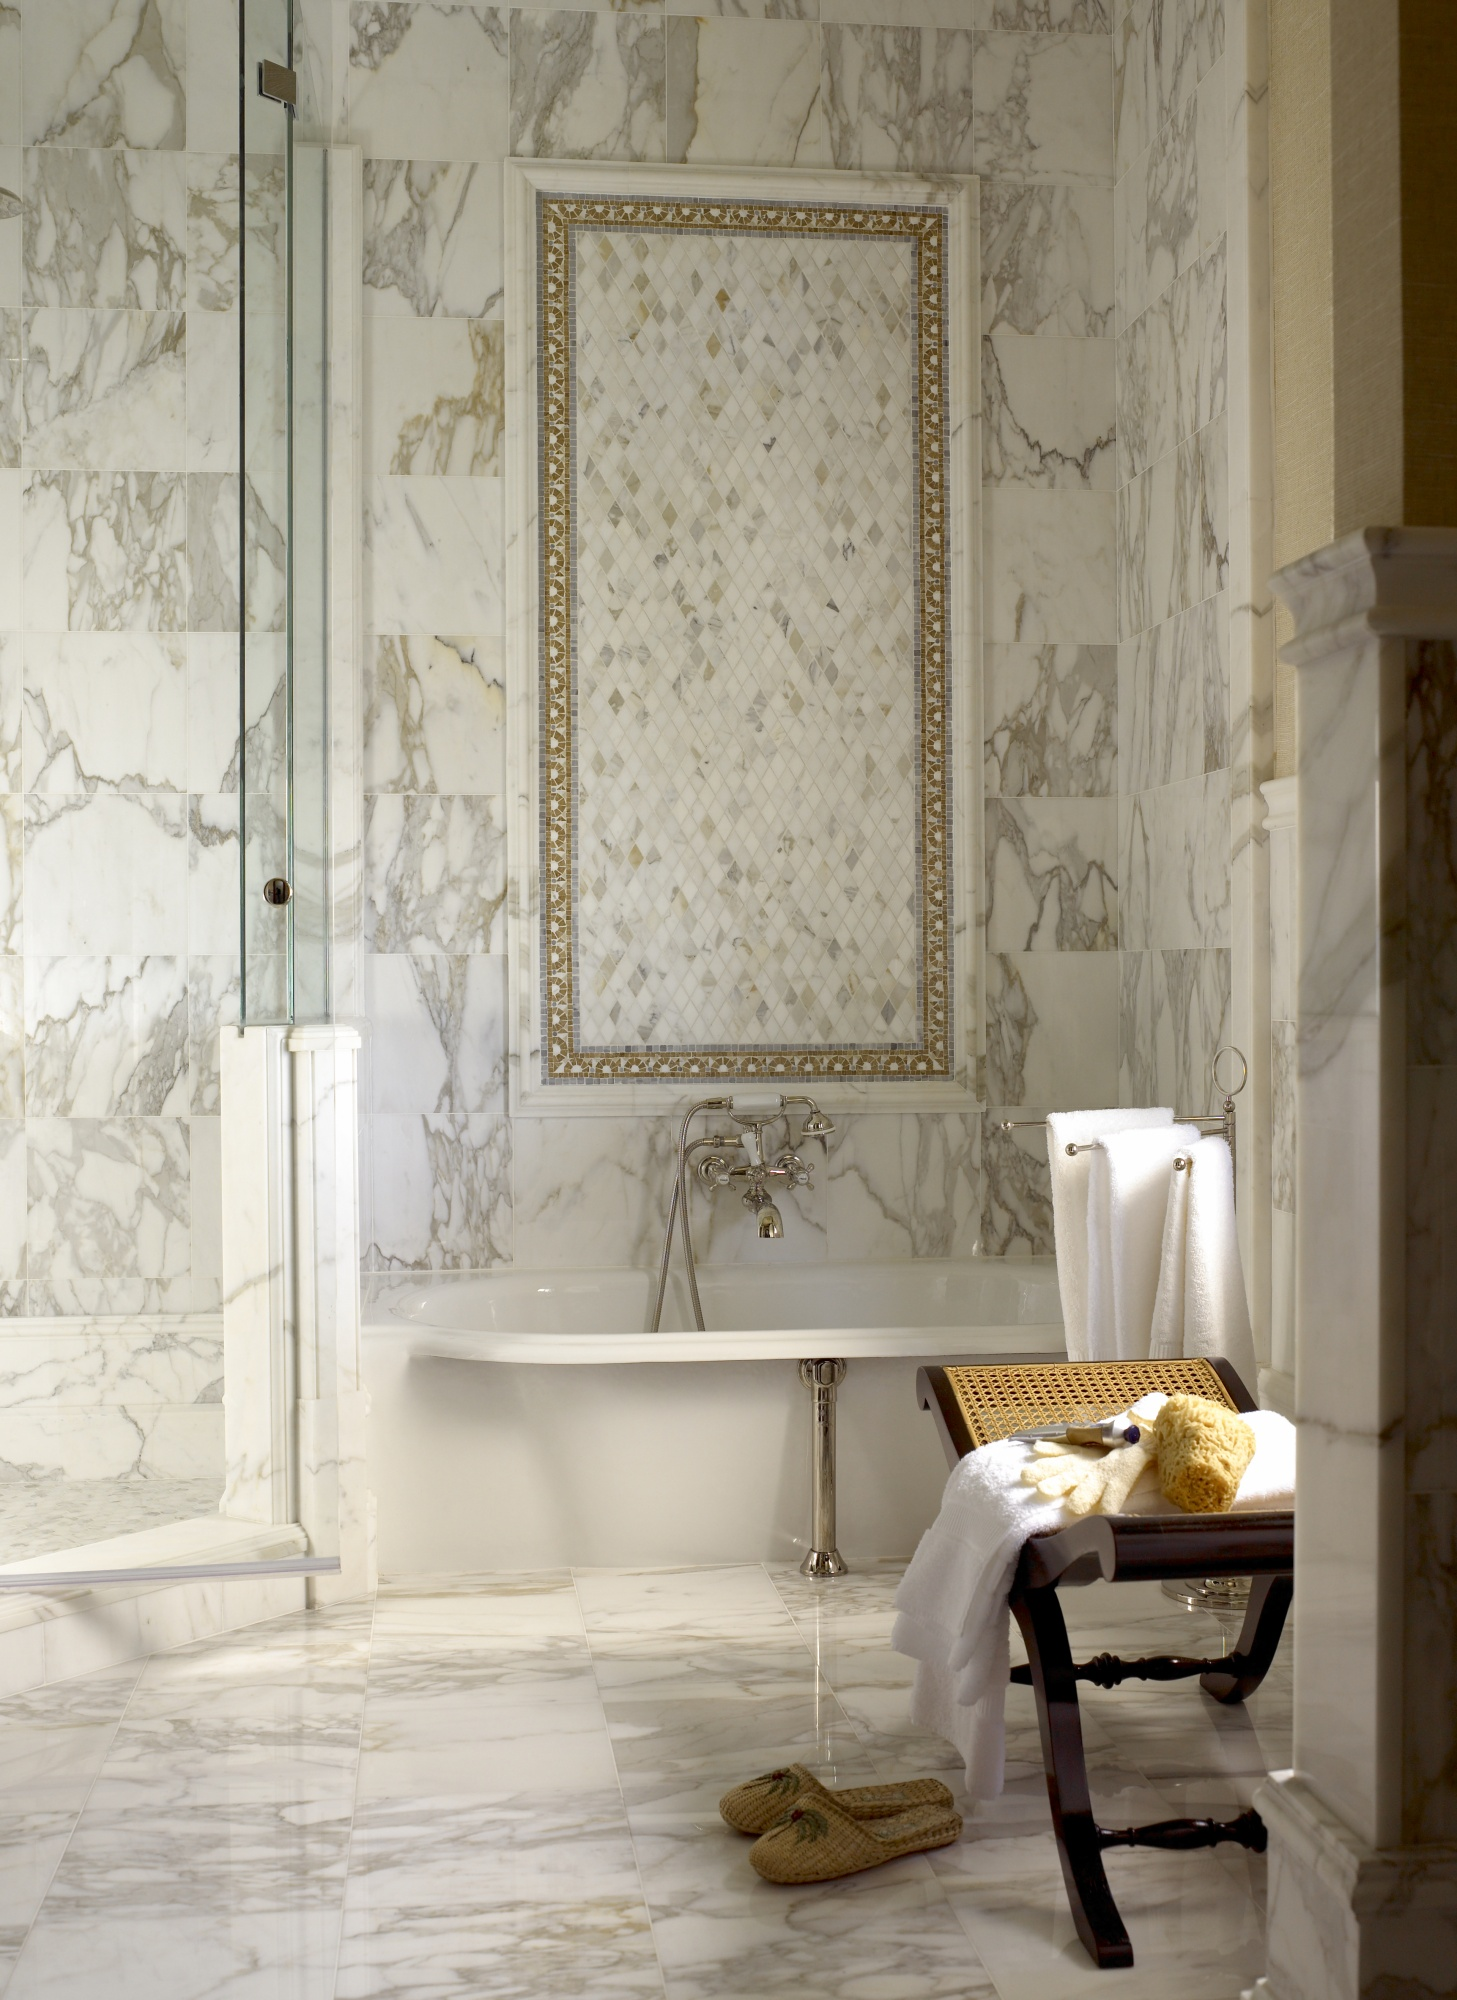 Marble mosaic tiles and nickel finishes within this guest bathroom.